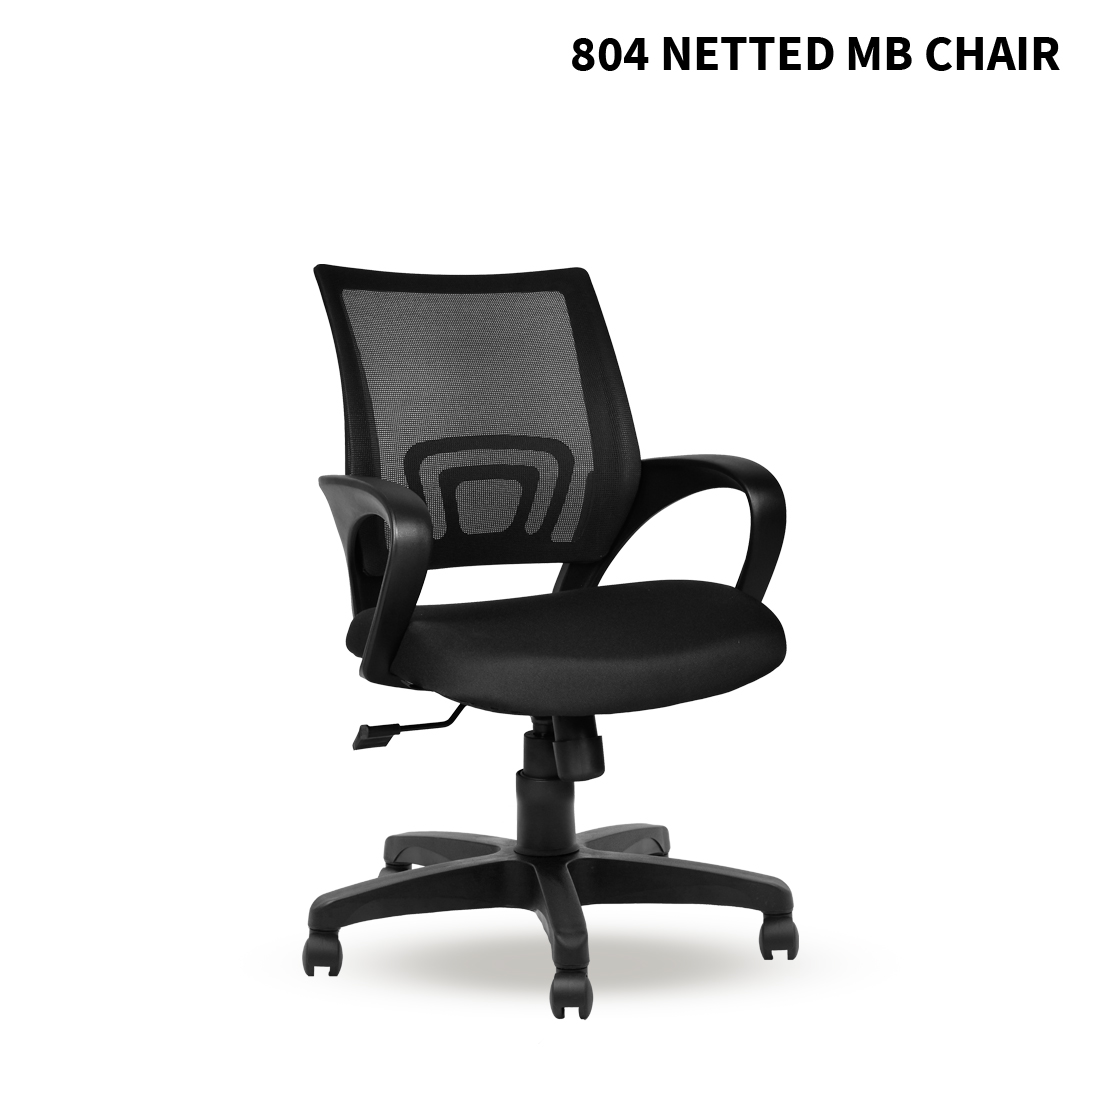 804 NETTED - MB - ANGLE - 001